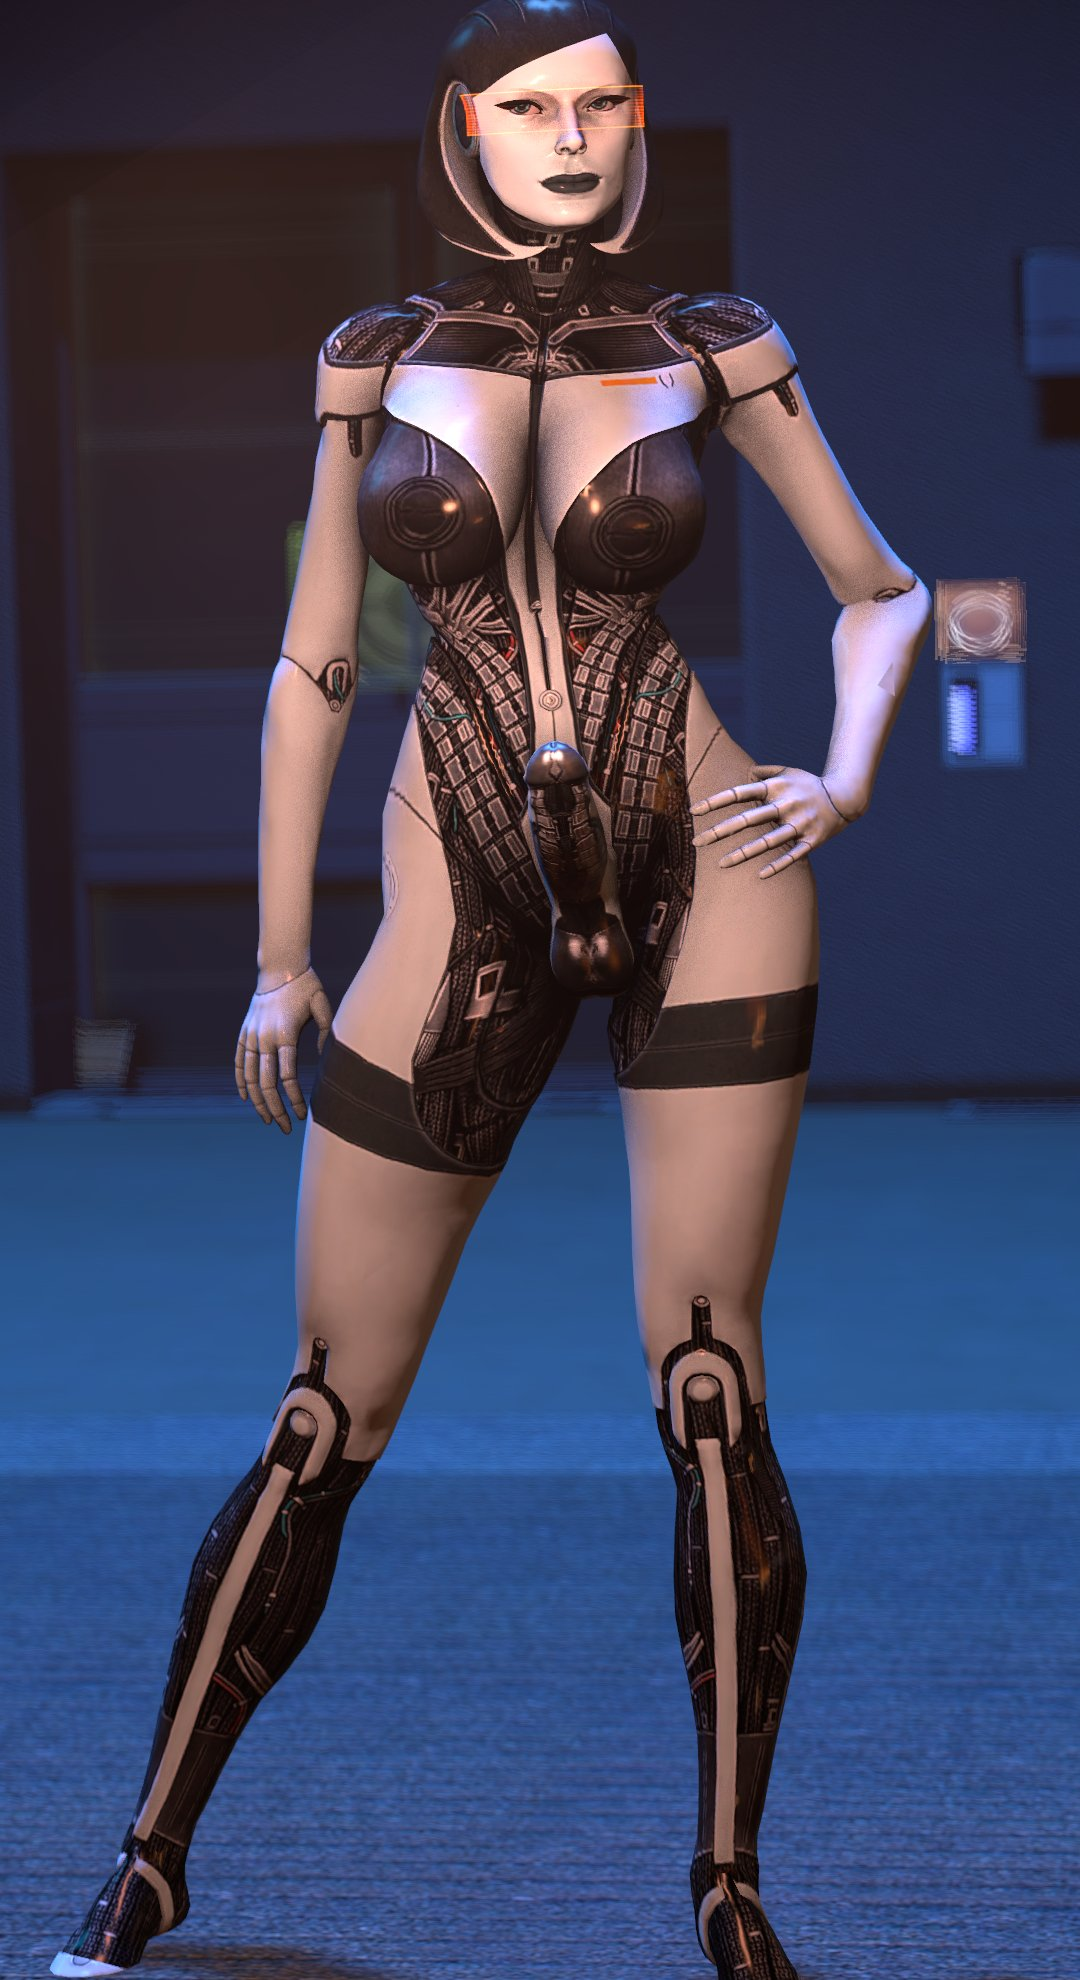 android big_breasts breasts dickgirl edi futa looking_at_viewer mass_effect mass_effect_3 penis robot source_filmmaker